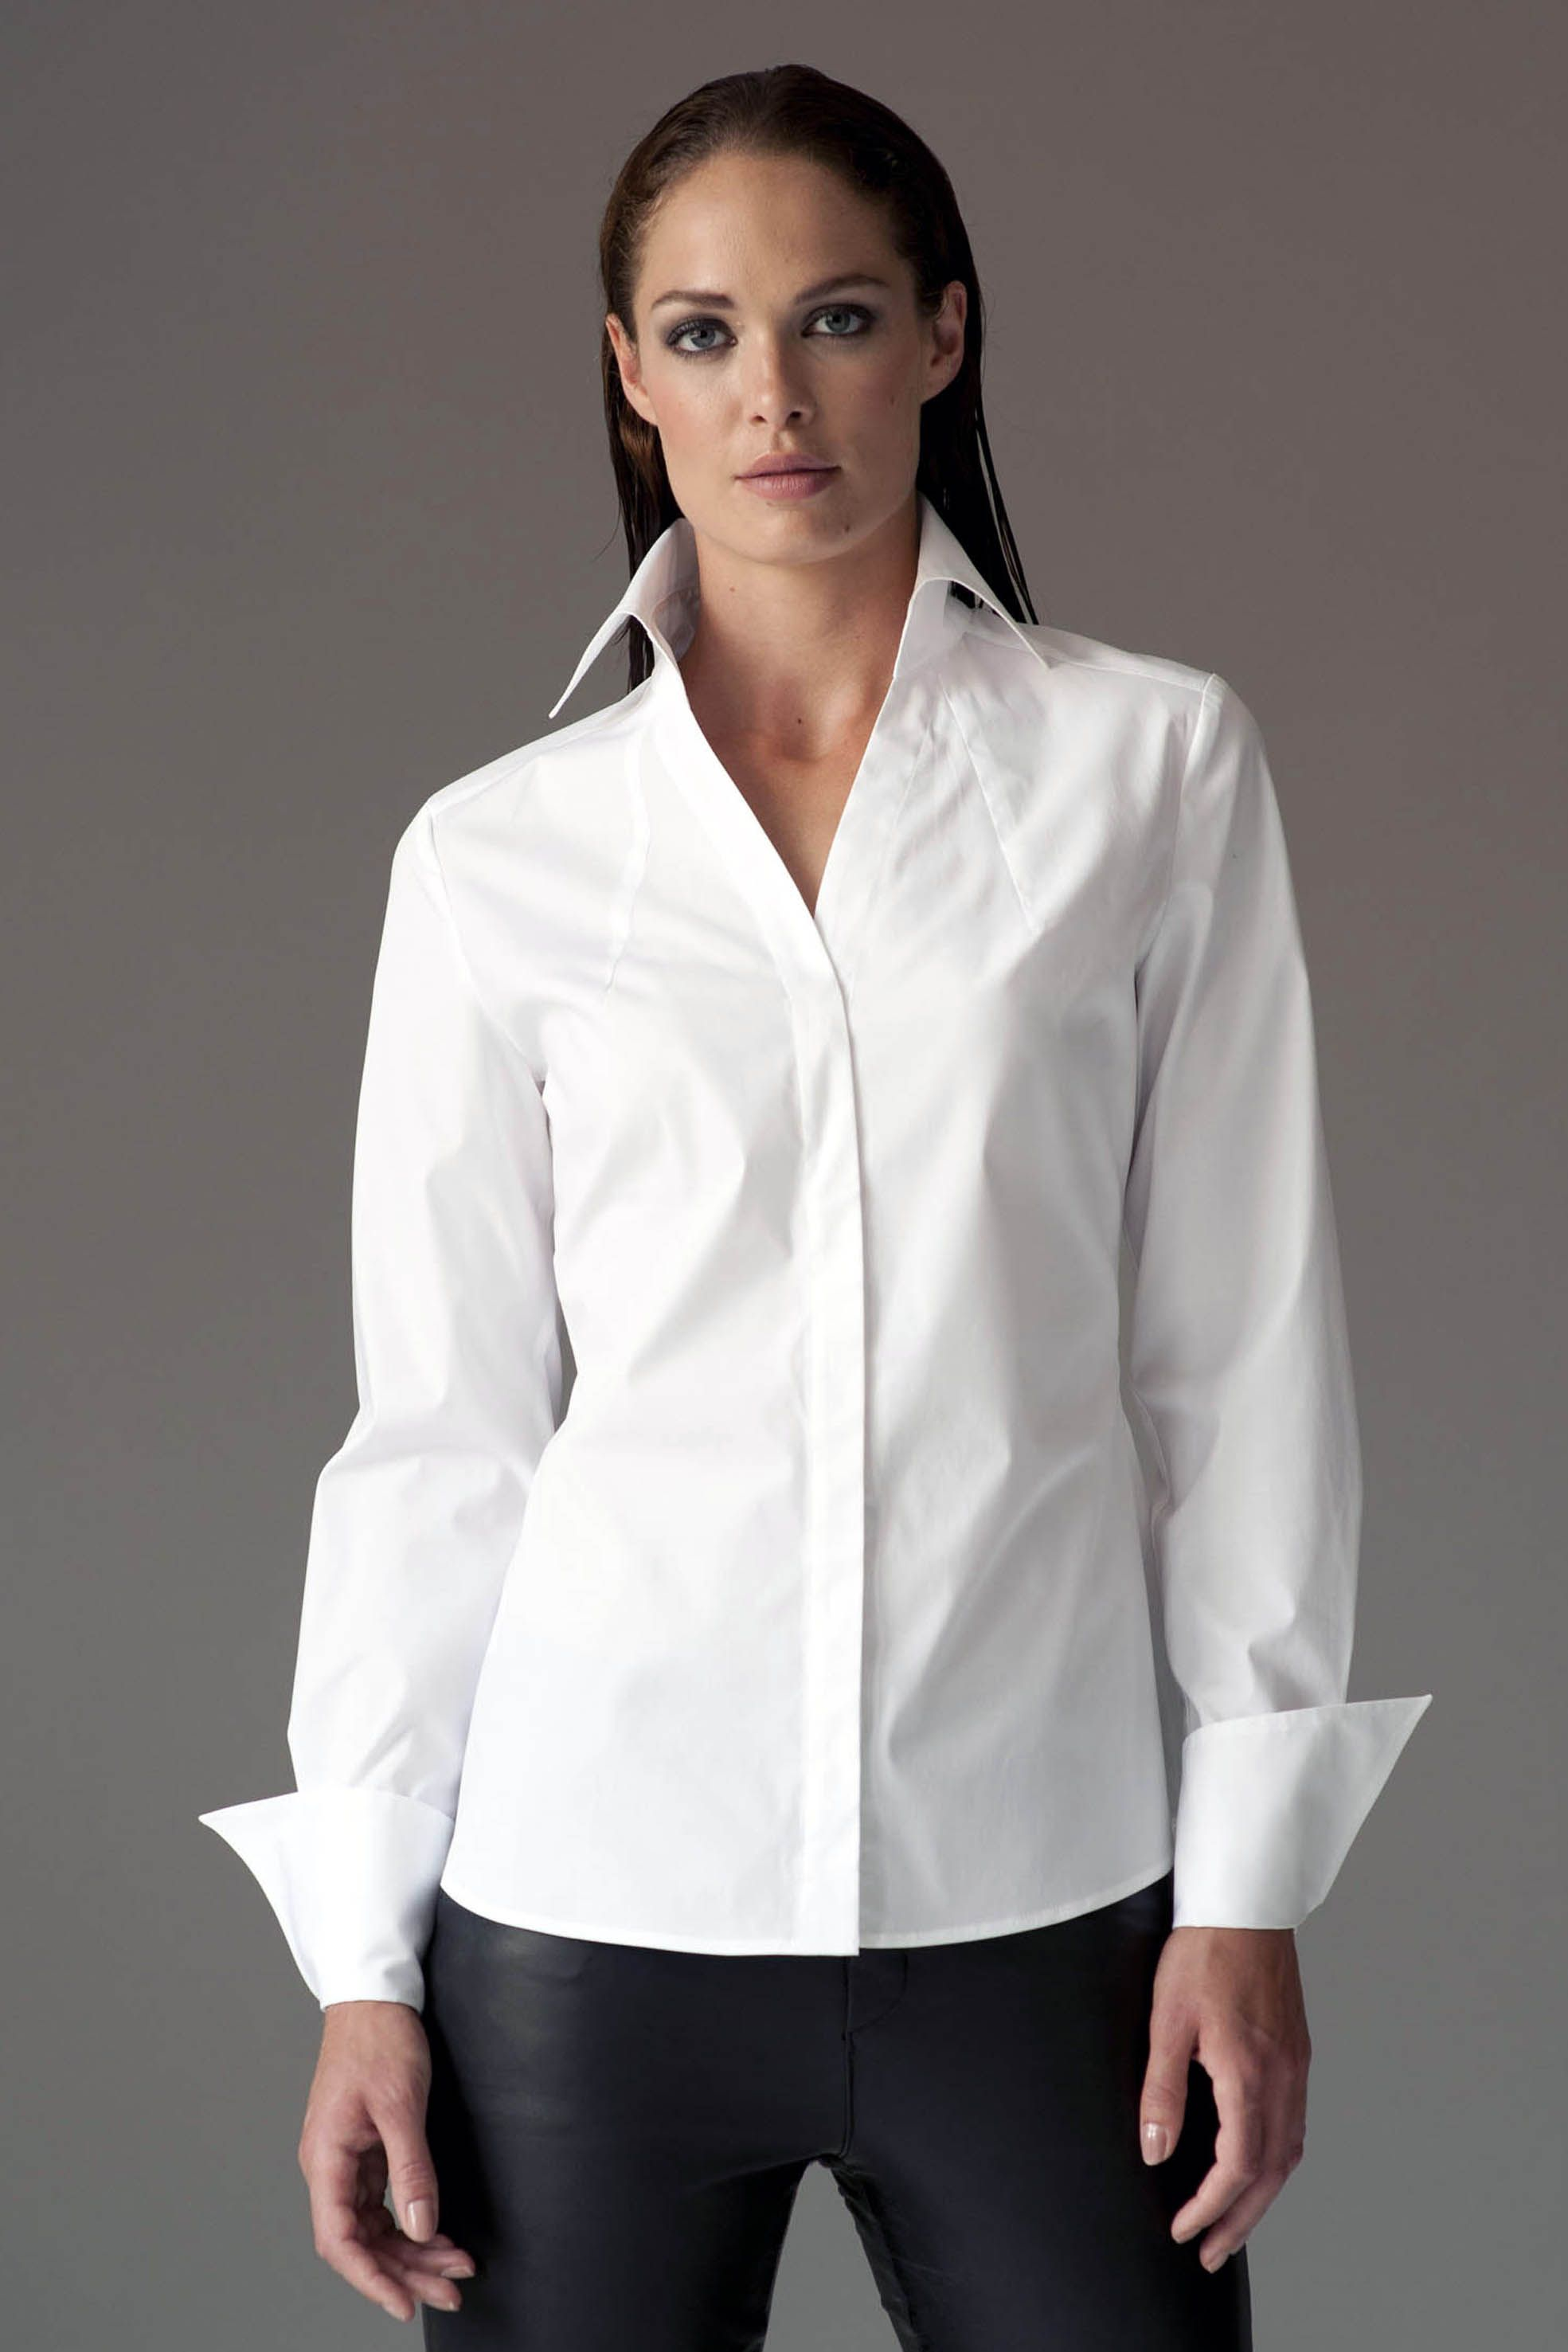 ecd6b5490e5 Classic white shirt. No questions. It is just the right thing for most  anything.